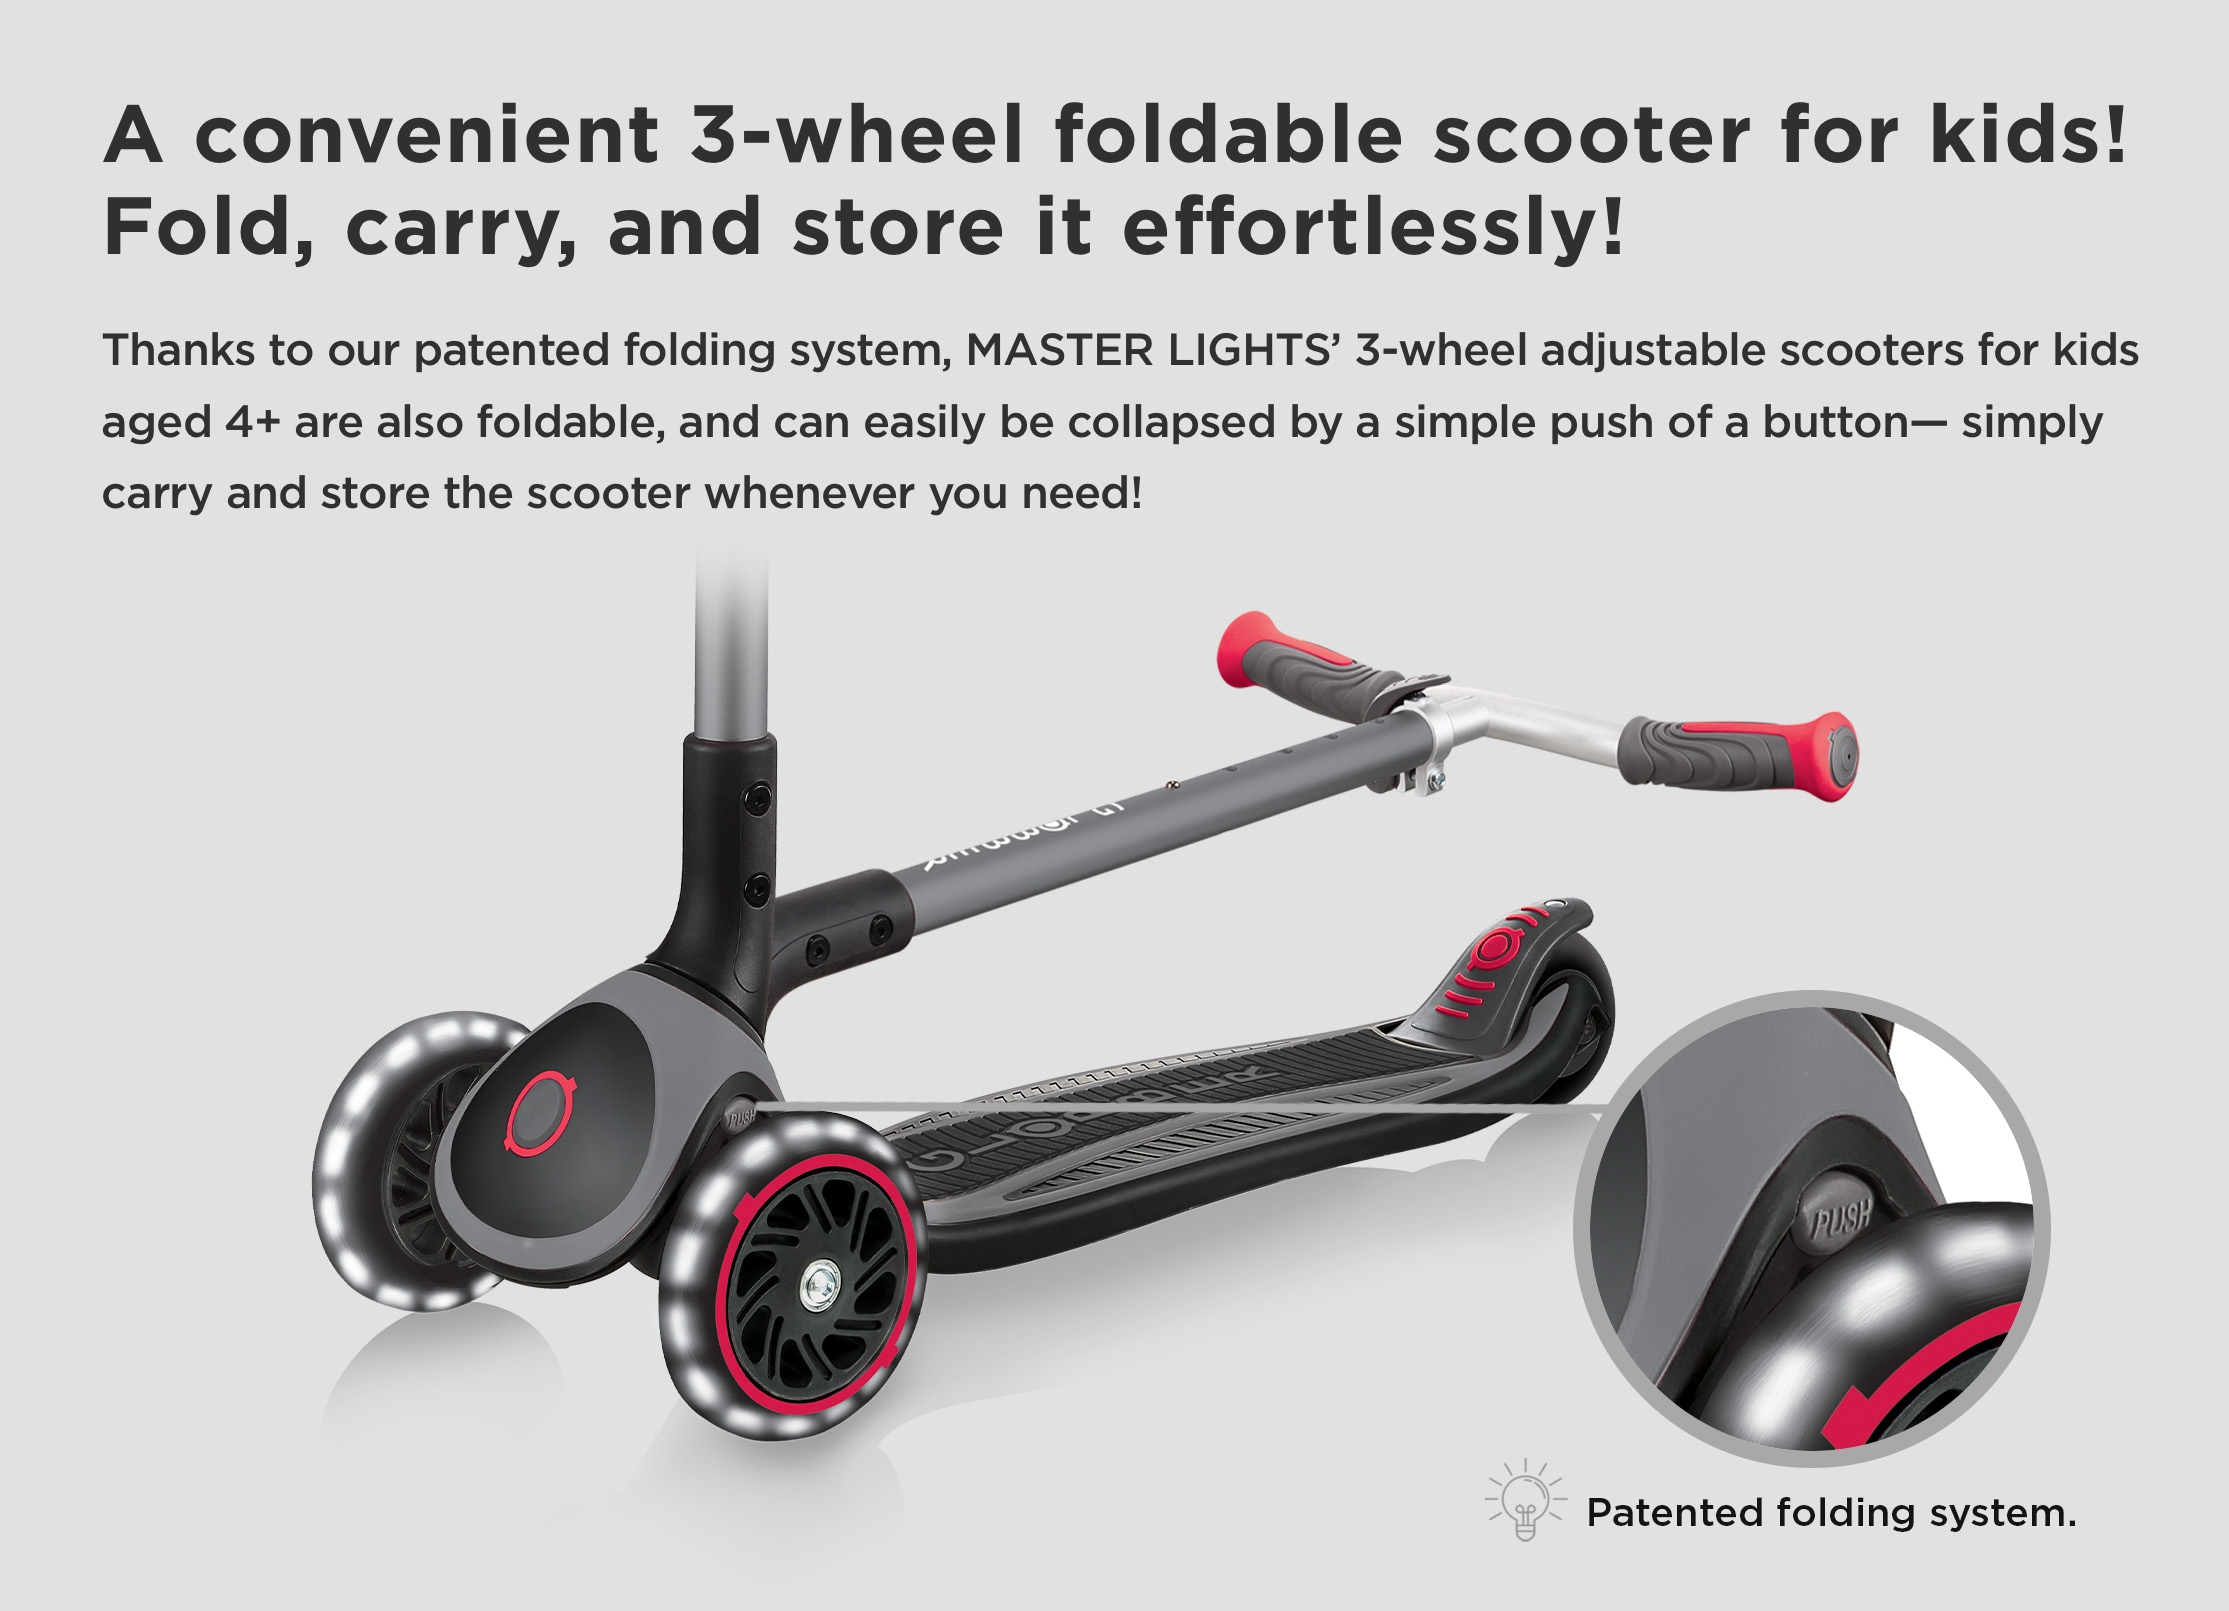 A convenient 3-wheel foldable scooter for kids! Fold, carry, and store it effortlessly! Thanks to our patented folding system, MASTER LIGHTS' 3-wheel adjustable scooters for kids aged 4+ are also foldable, and can easily be collapsed by a simple push of a button— simply carry and store the scooter whenever you need!